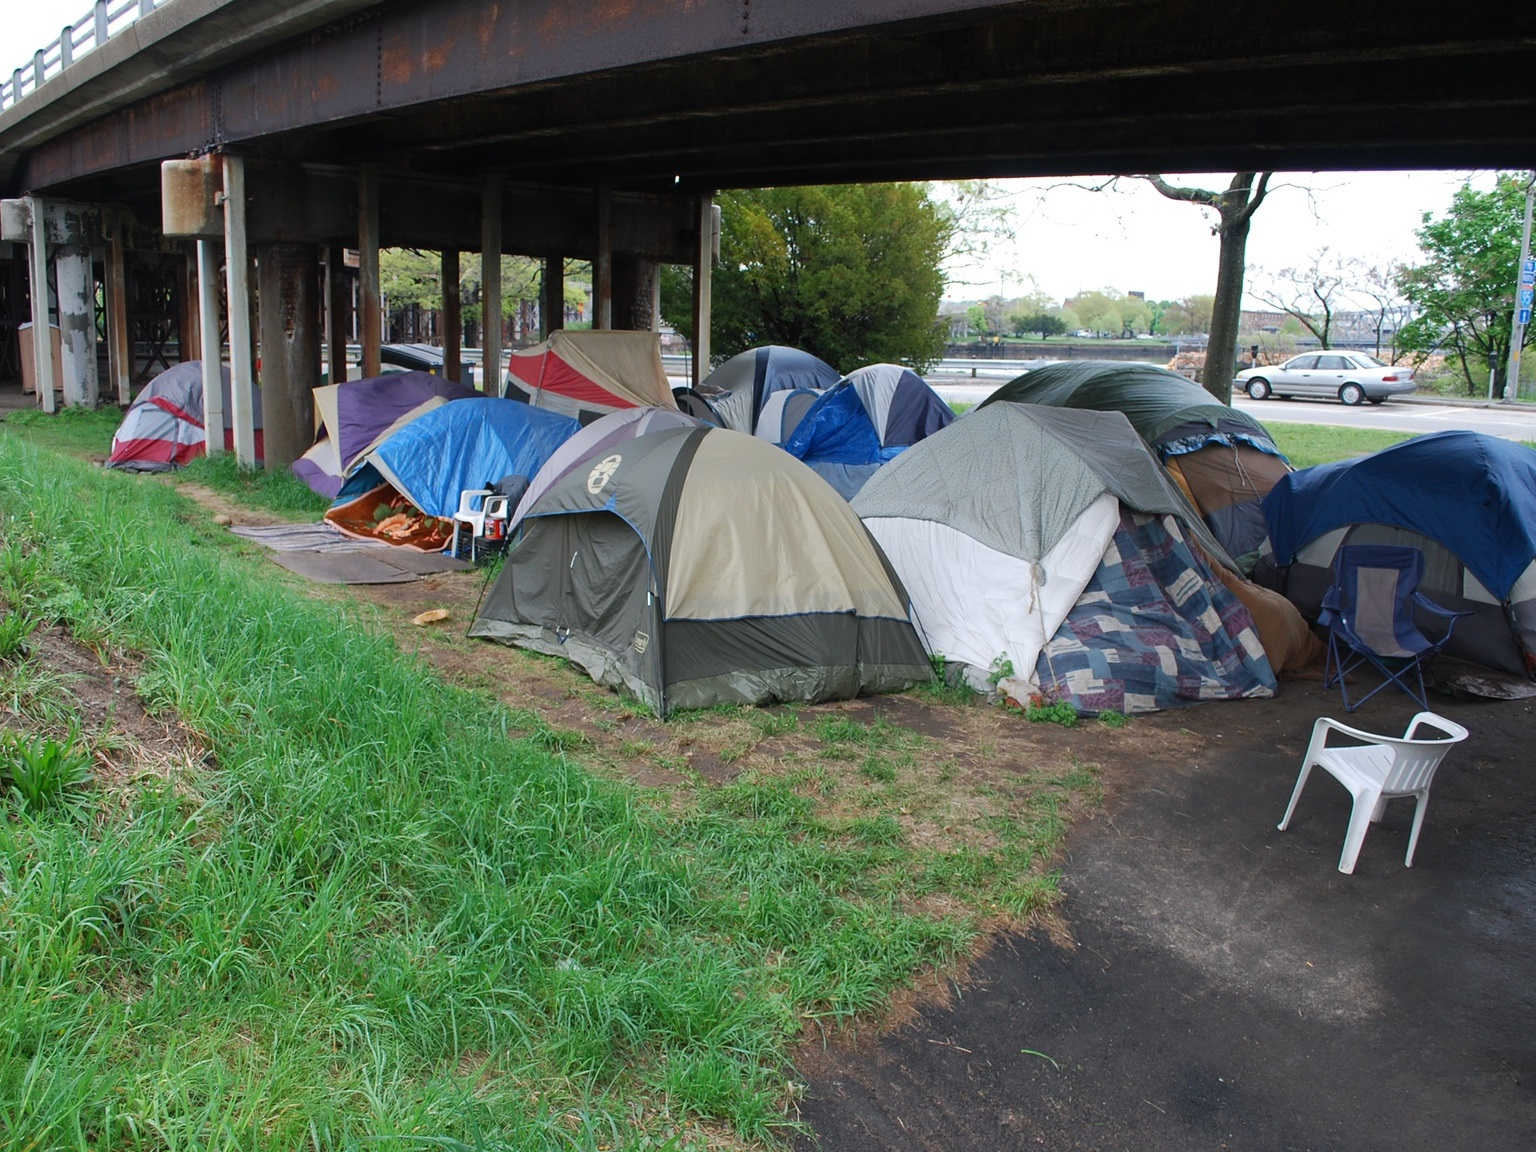 What the Homeless - Tent City in Providence & The Good News Today u2013 What The Homeless Teach Us About Abiding